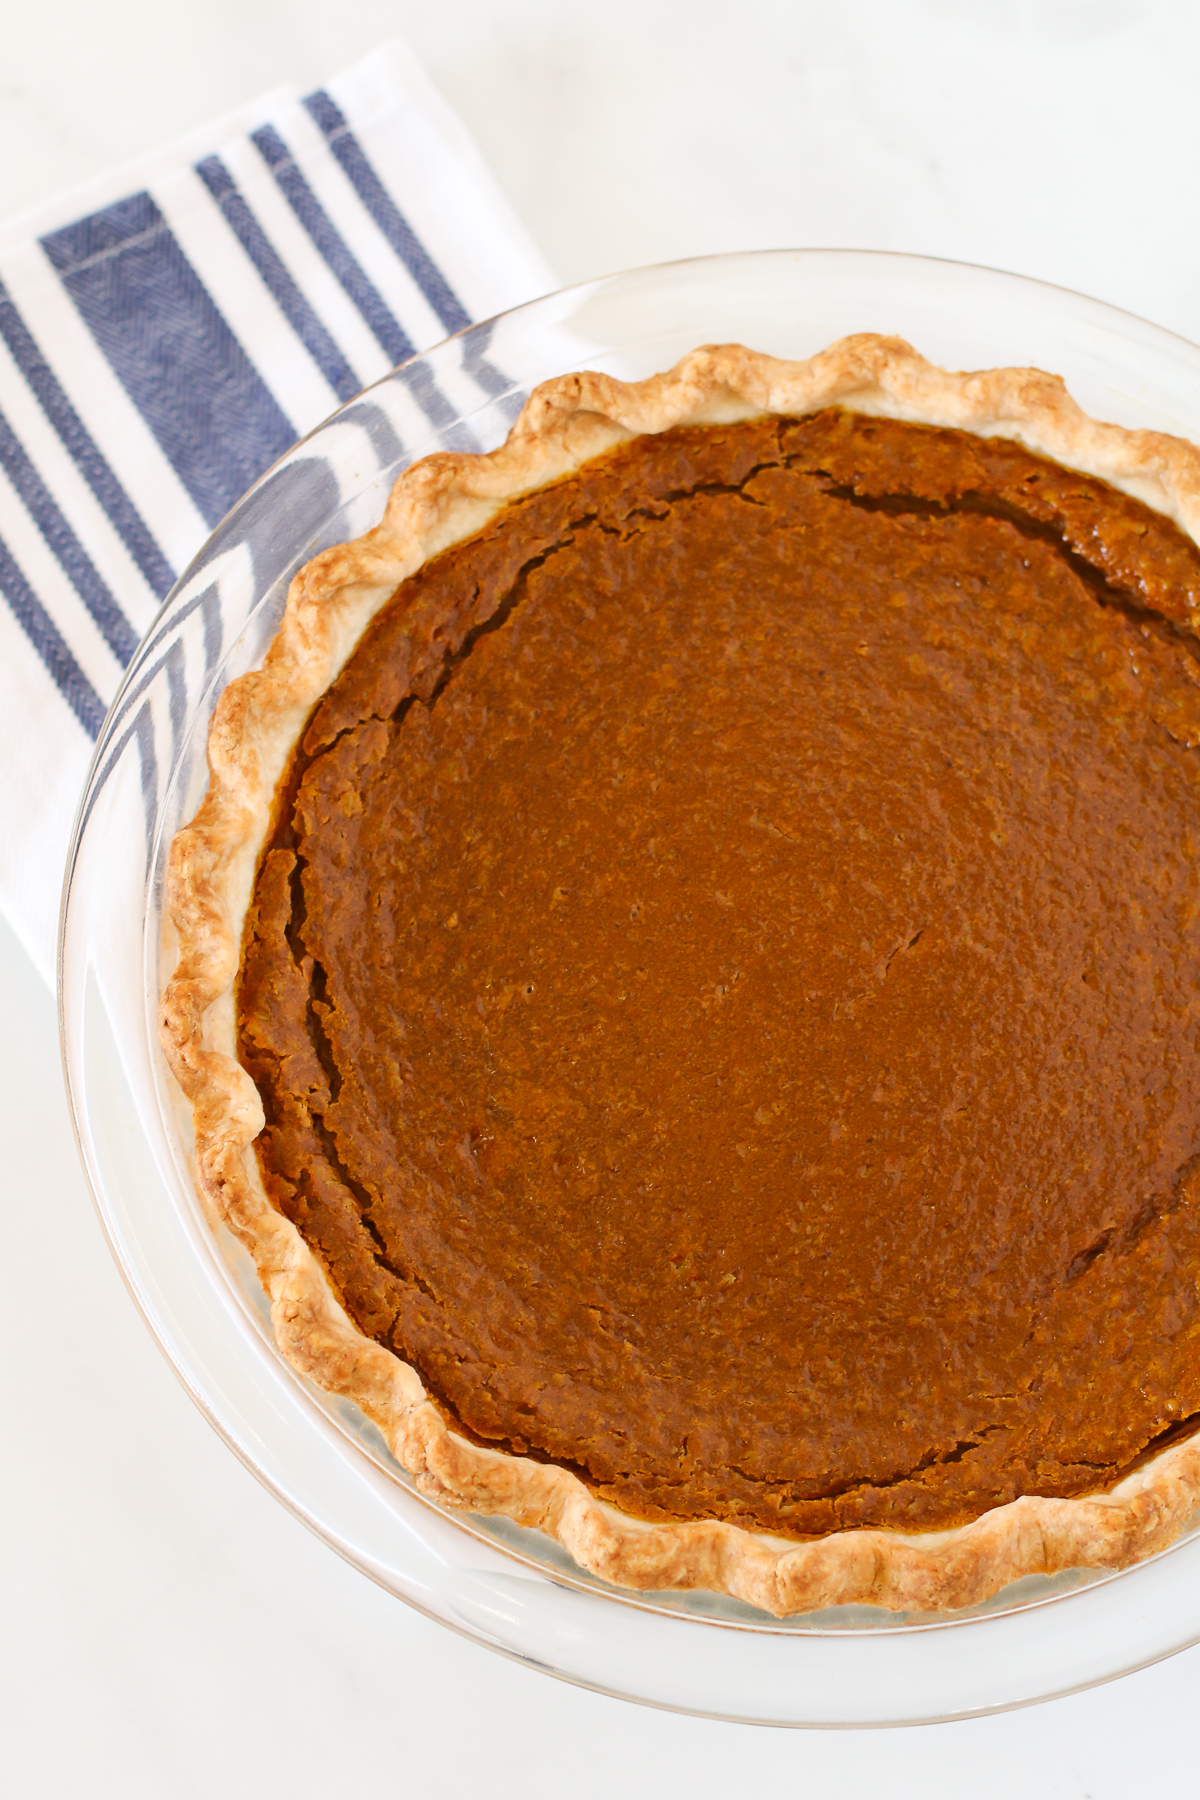 Gluten Free Vegan Pumpkin Pie. This creamy, perfectly spiced pumpkin pie is well suited for any holiday gathering!